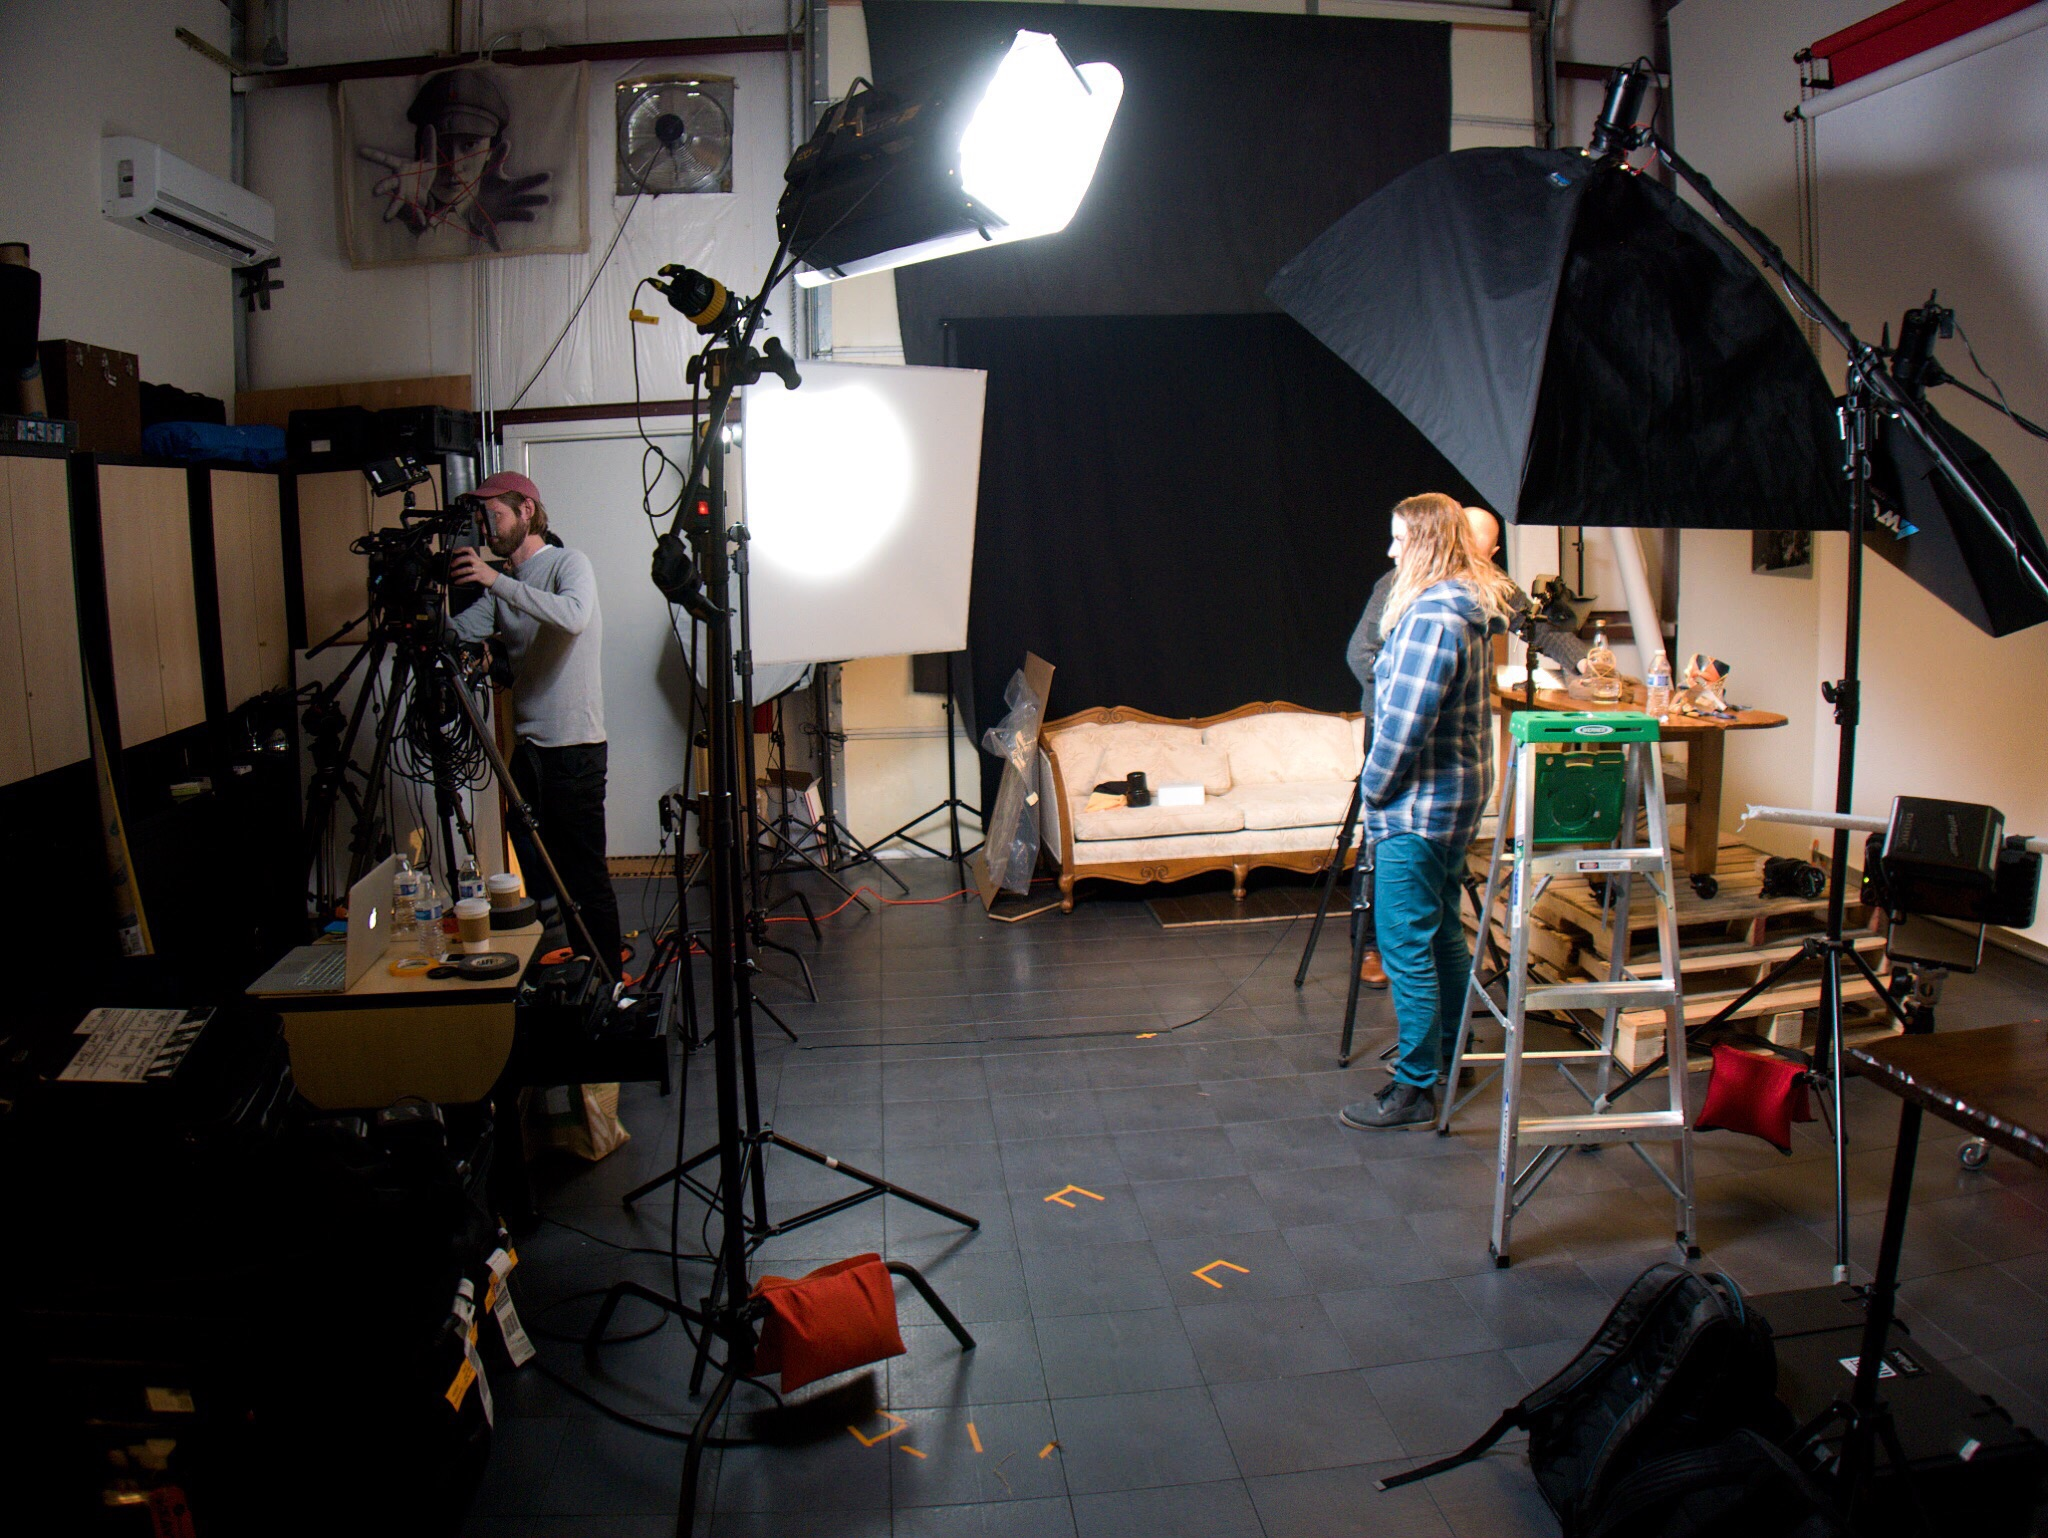 Some of the lights you see were for the video set itself; some were part of the content. As you can imagine, it can be a little tricky showing anything to do with lighting on video and not having the lights that light the set interfere with the demo setup.